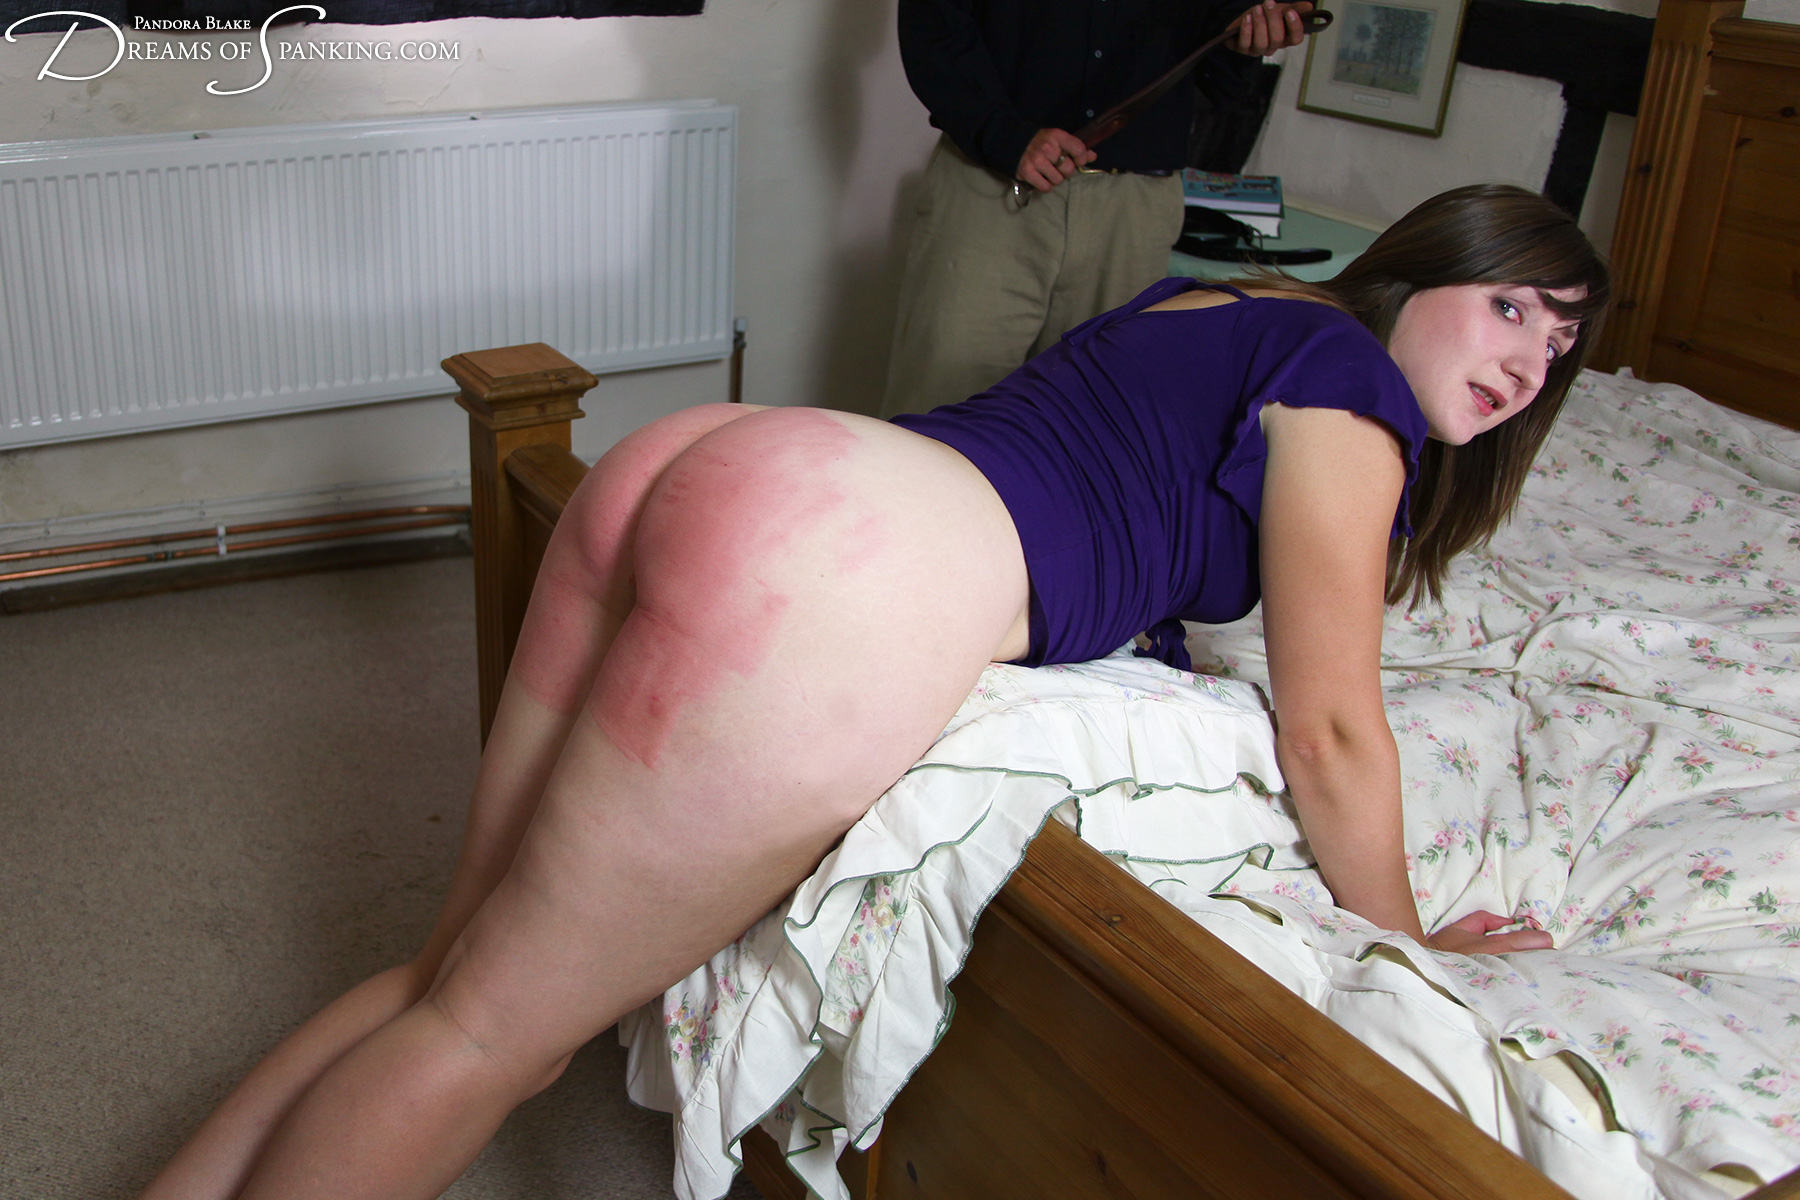 Pandora's Belt Whipping Fantasy at Dreams of Spanking